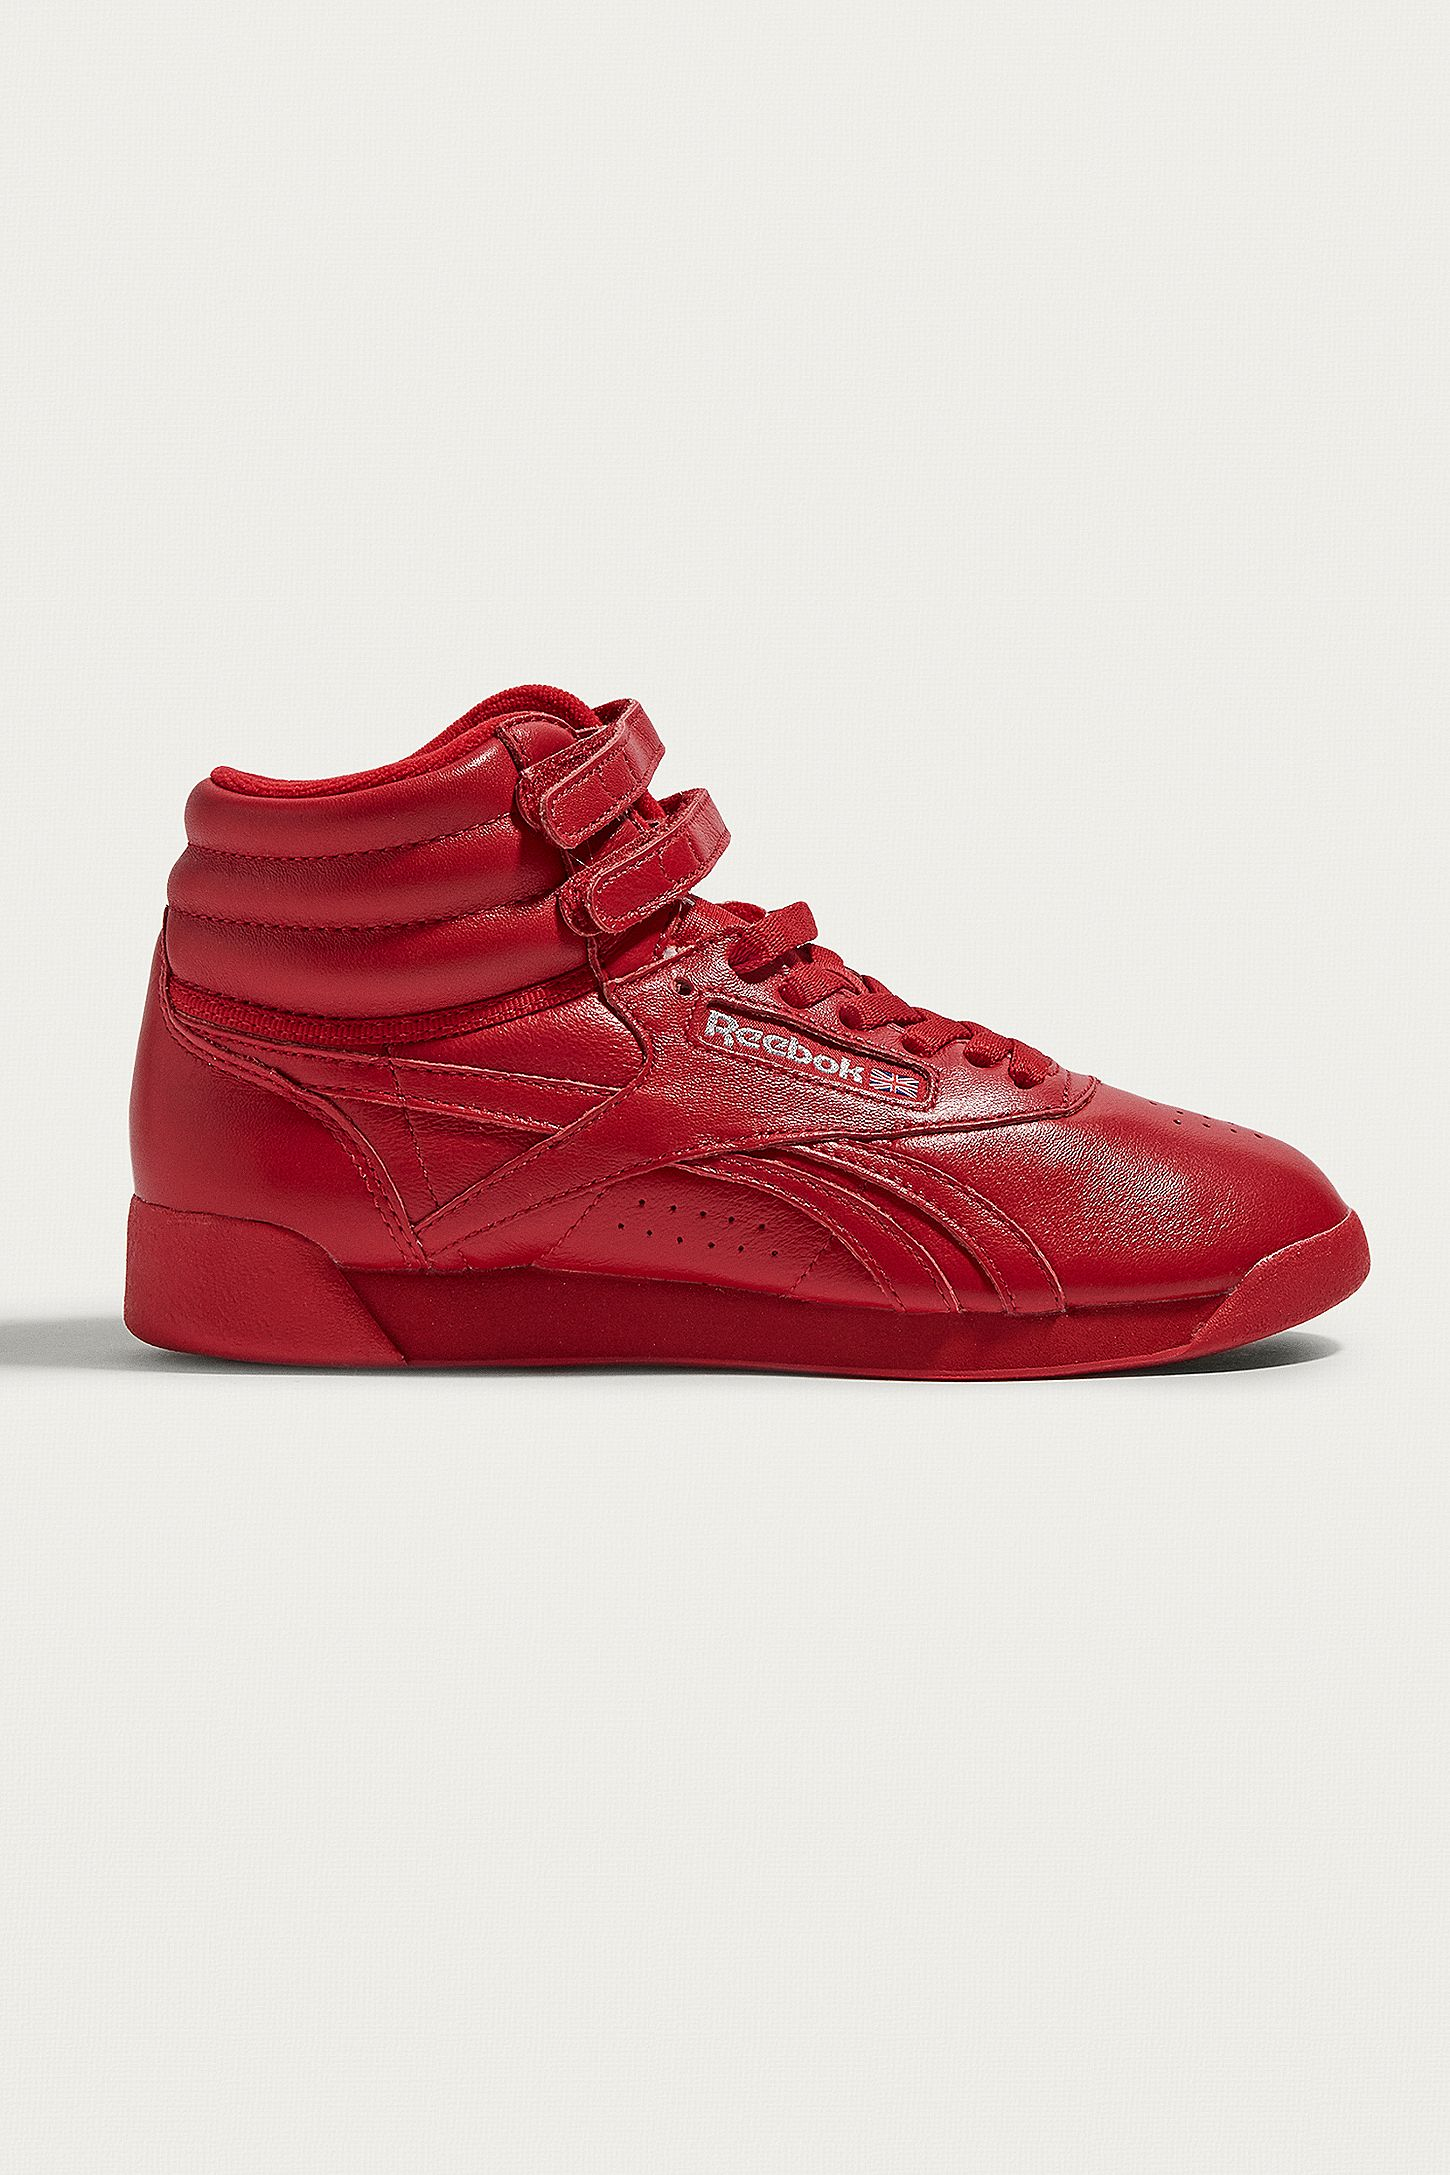 7275ee3c17d Reebok Freestyle Red High Top Trainers